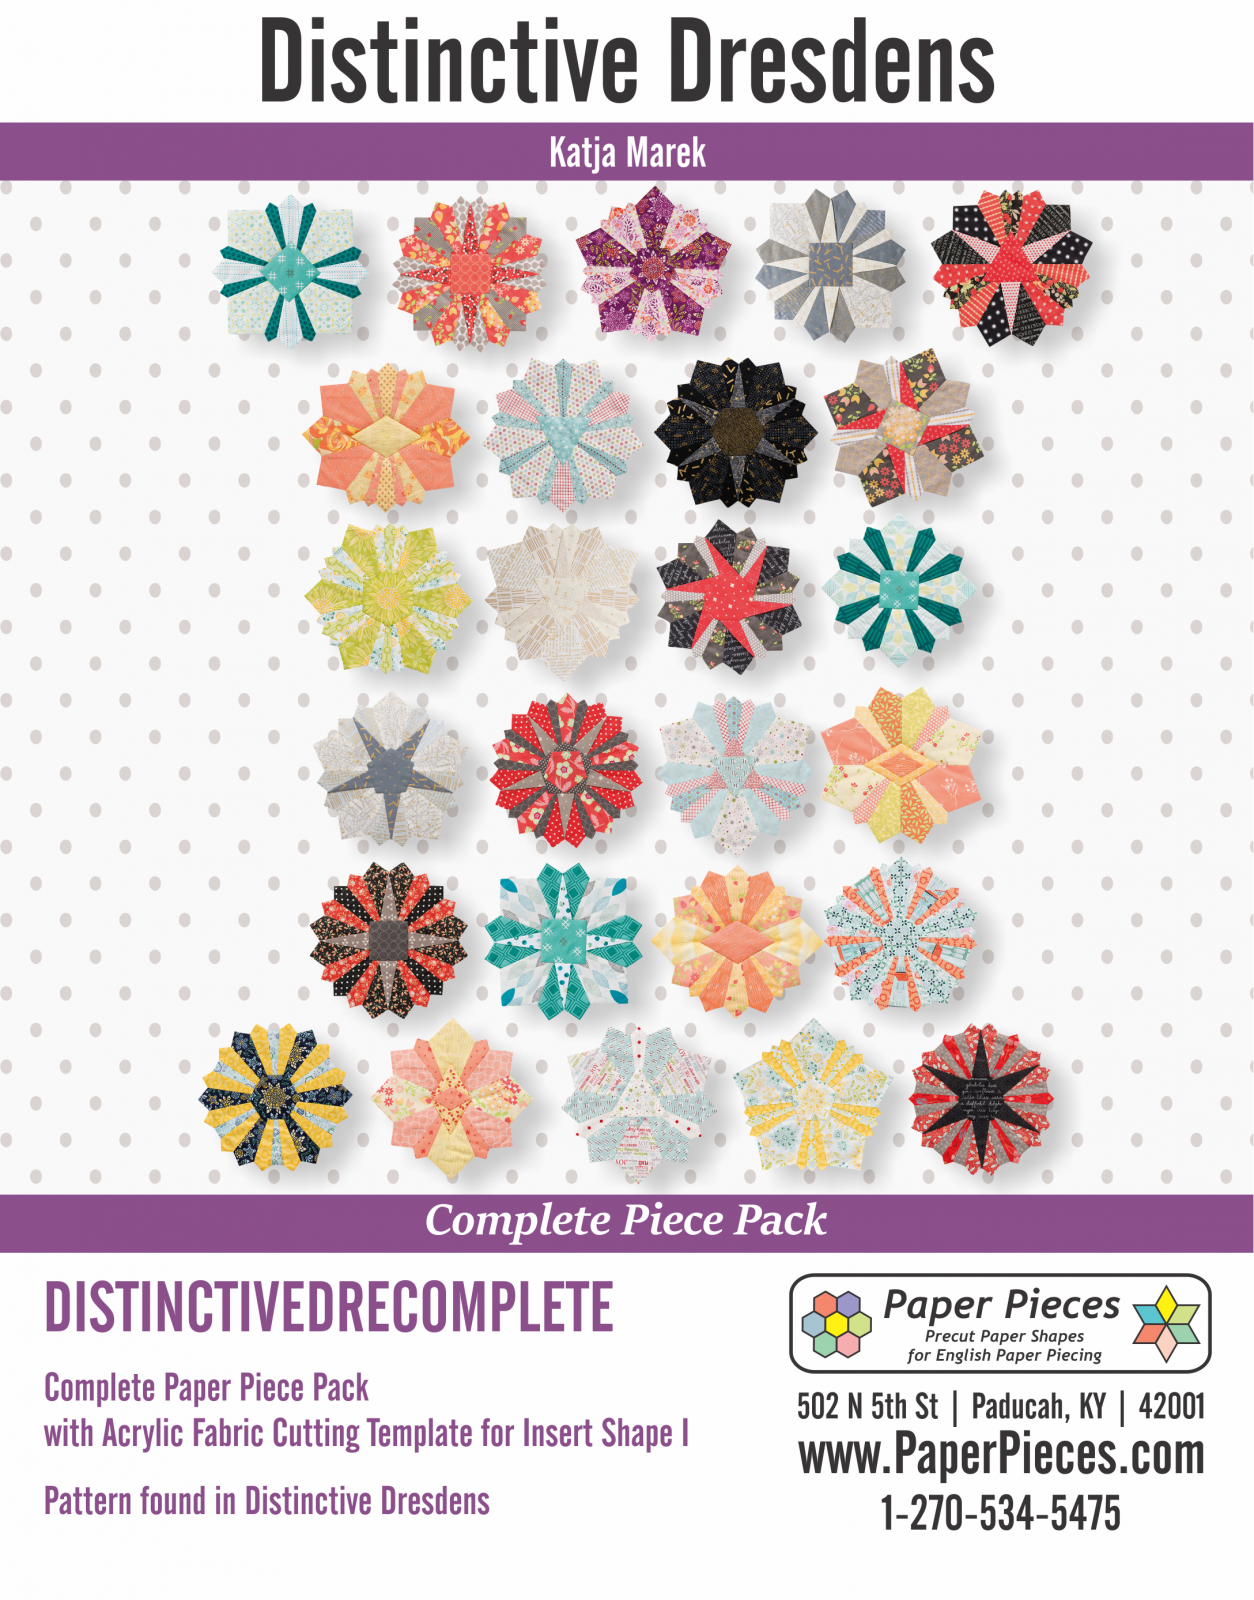 Distinctive Dresdens Complete Piece Pack